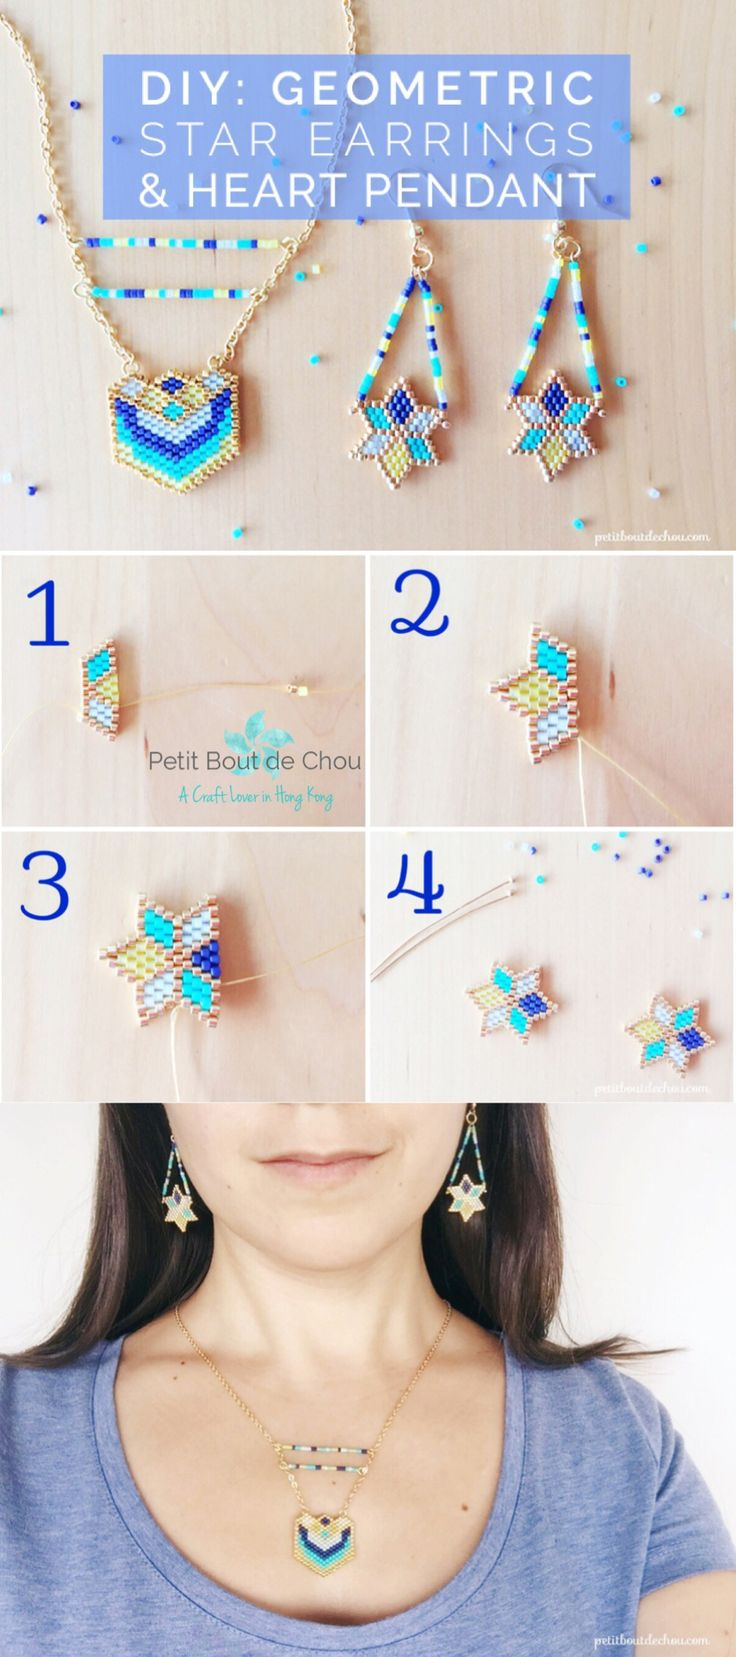 Learn how to make these stunning geometric star earrings and heart pendant set with miyuki delica beads following this step by step tutorial with free pattern.